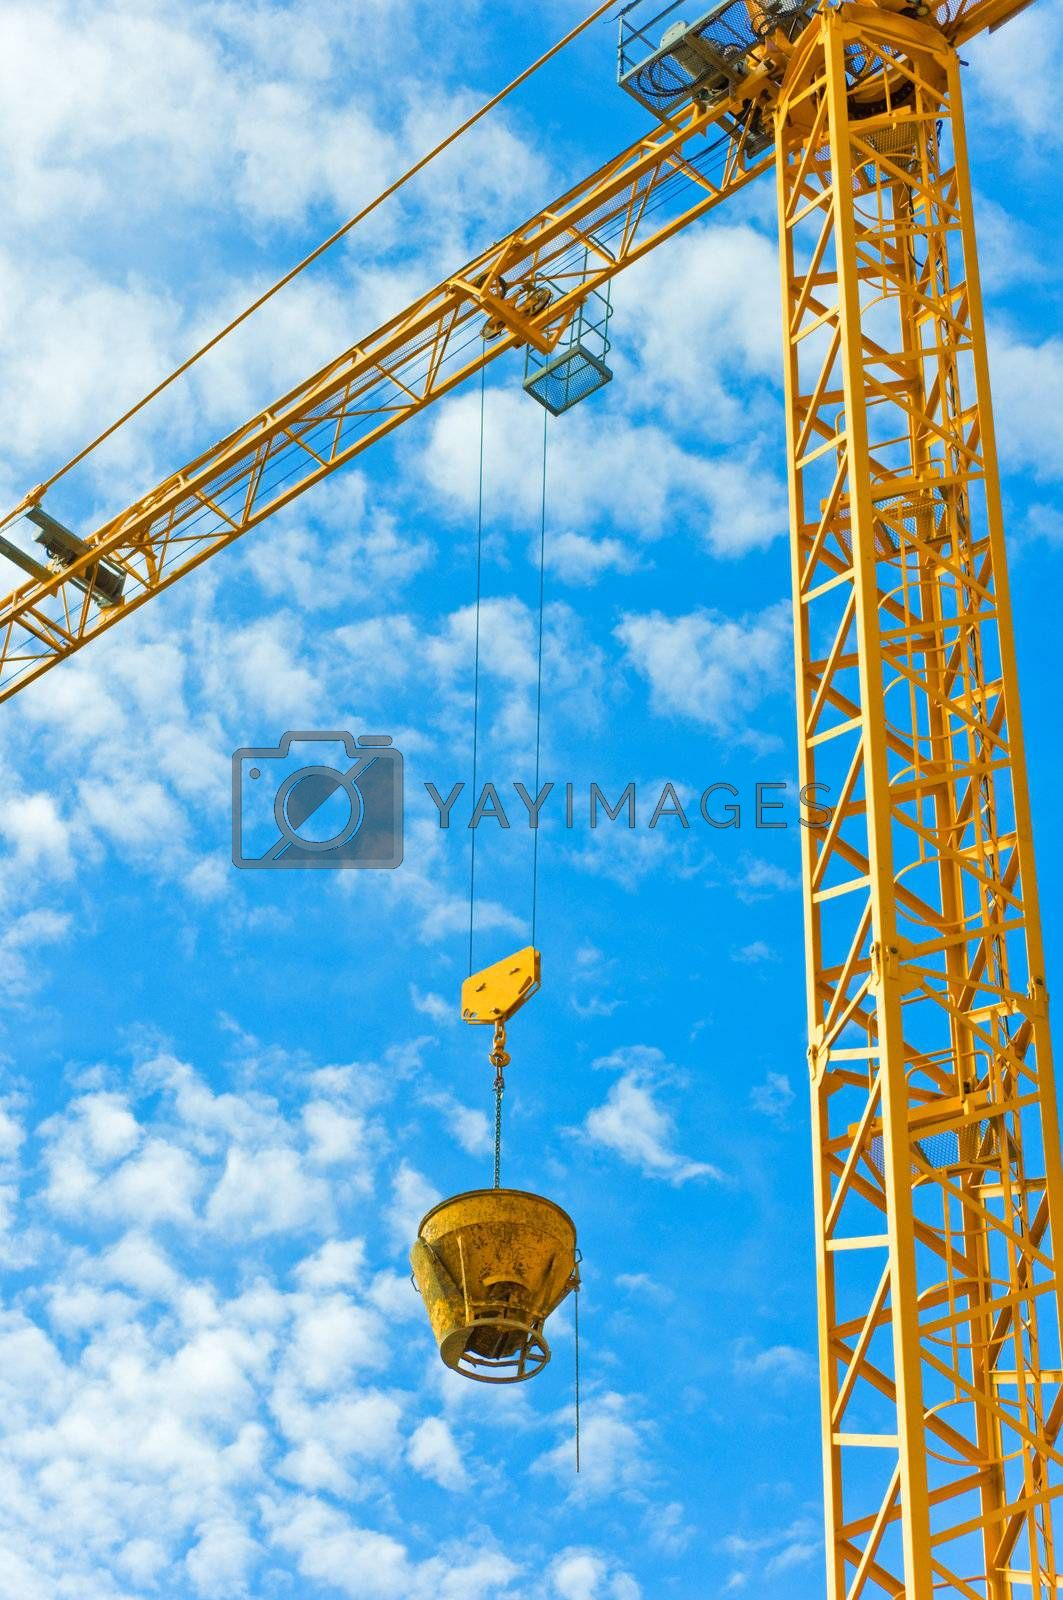 Yellow crane against blue sky with fluffy clouds.